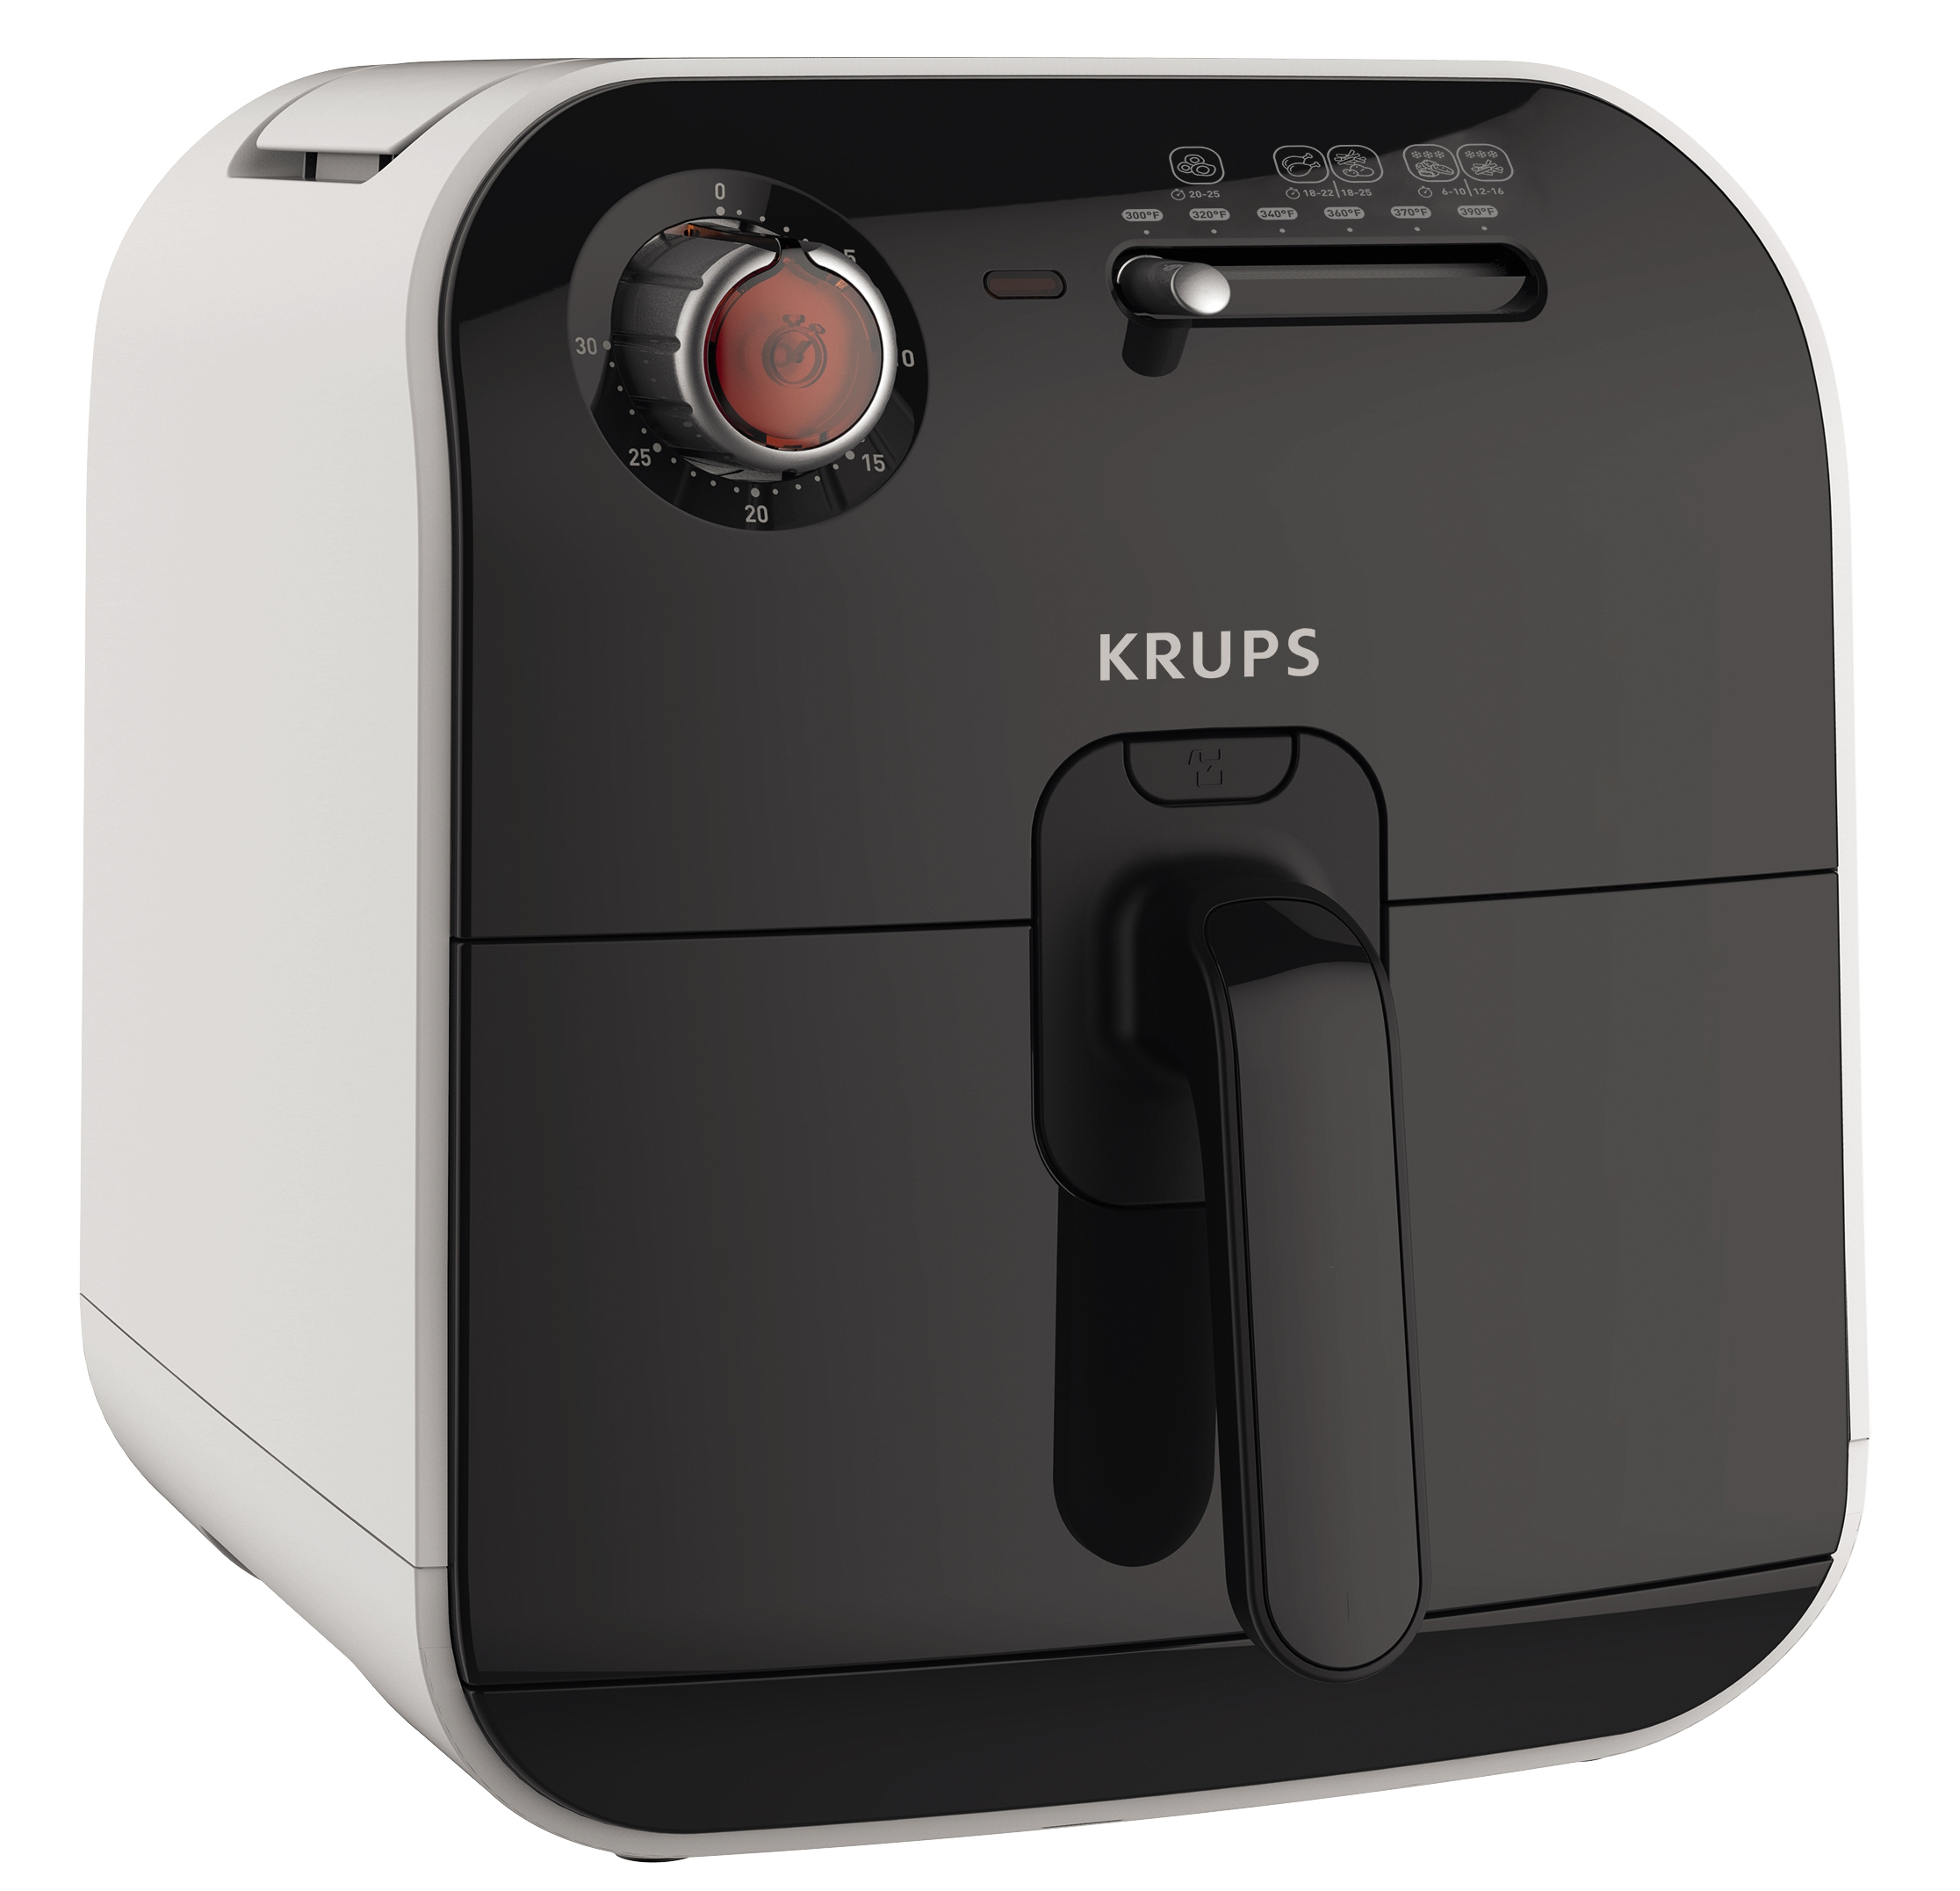 KRUPS Air Fryer courtesy of KRUPS USA